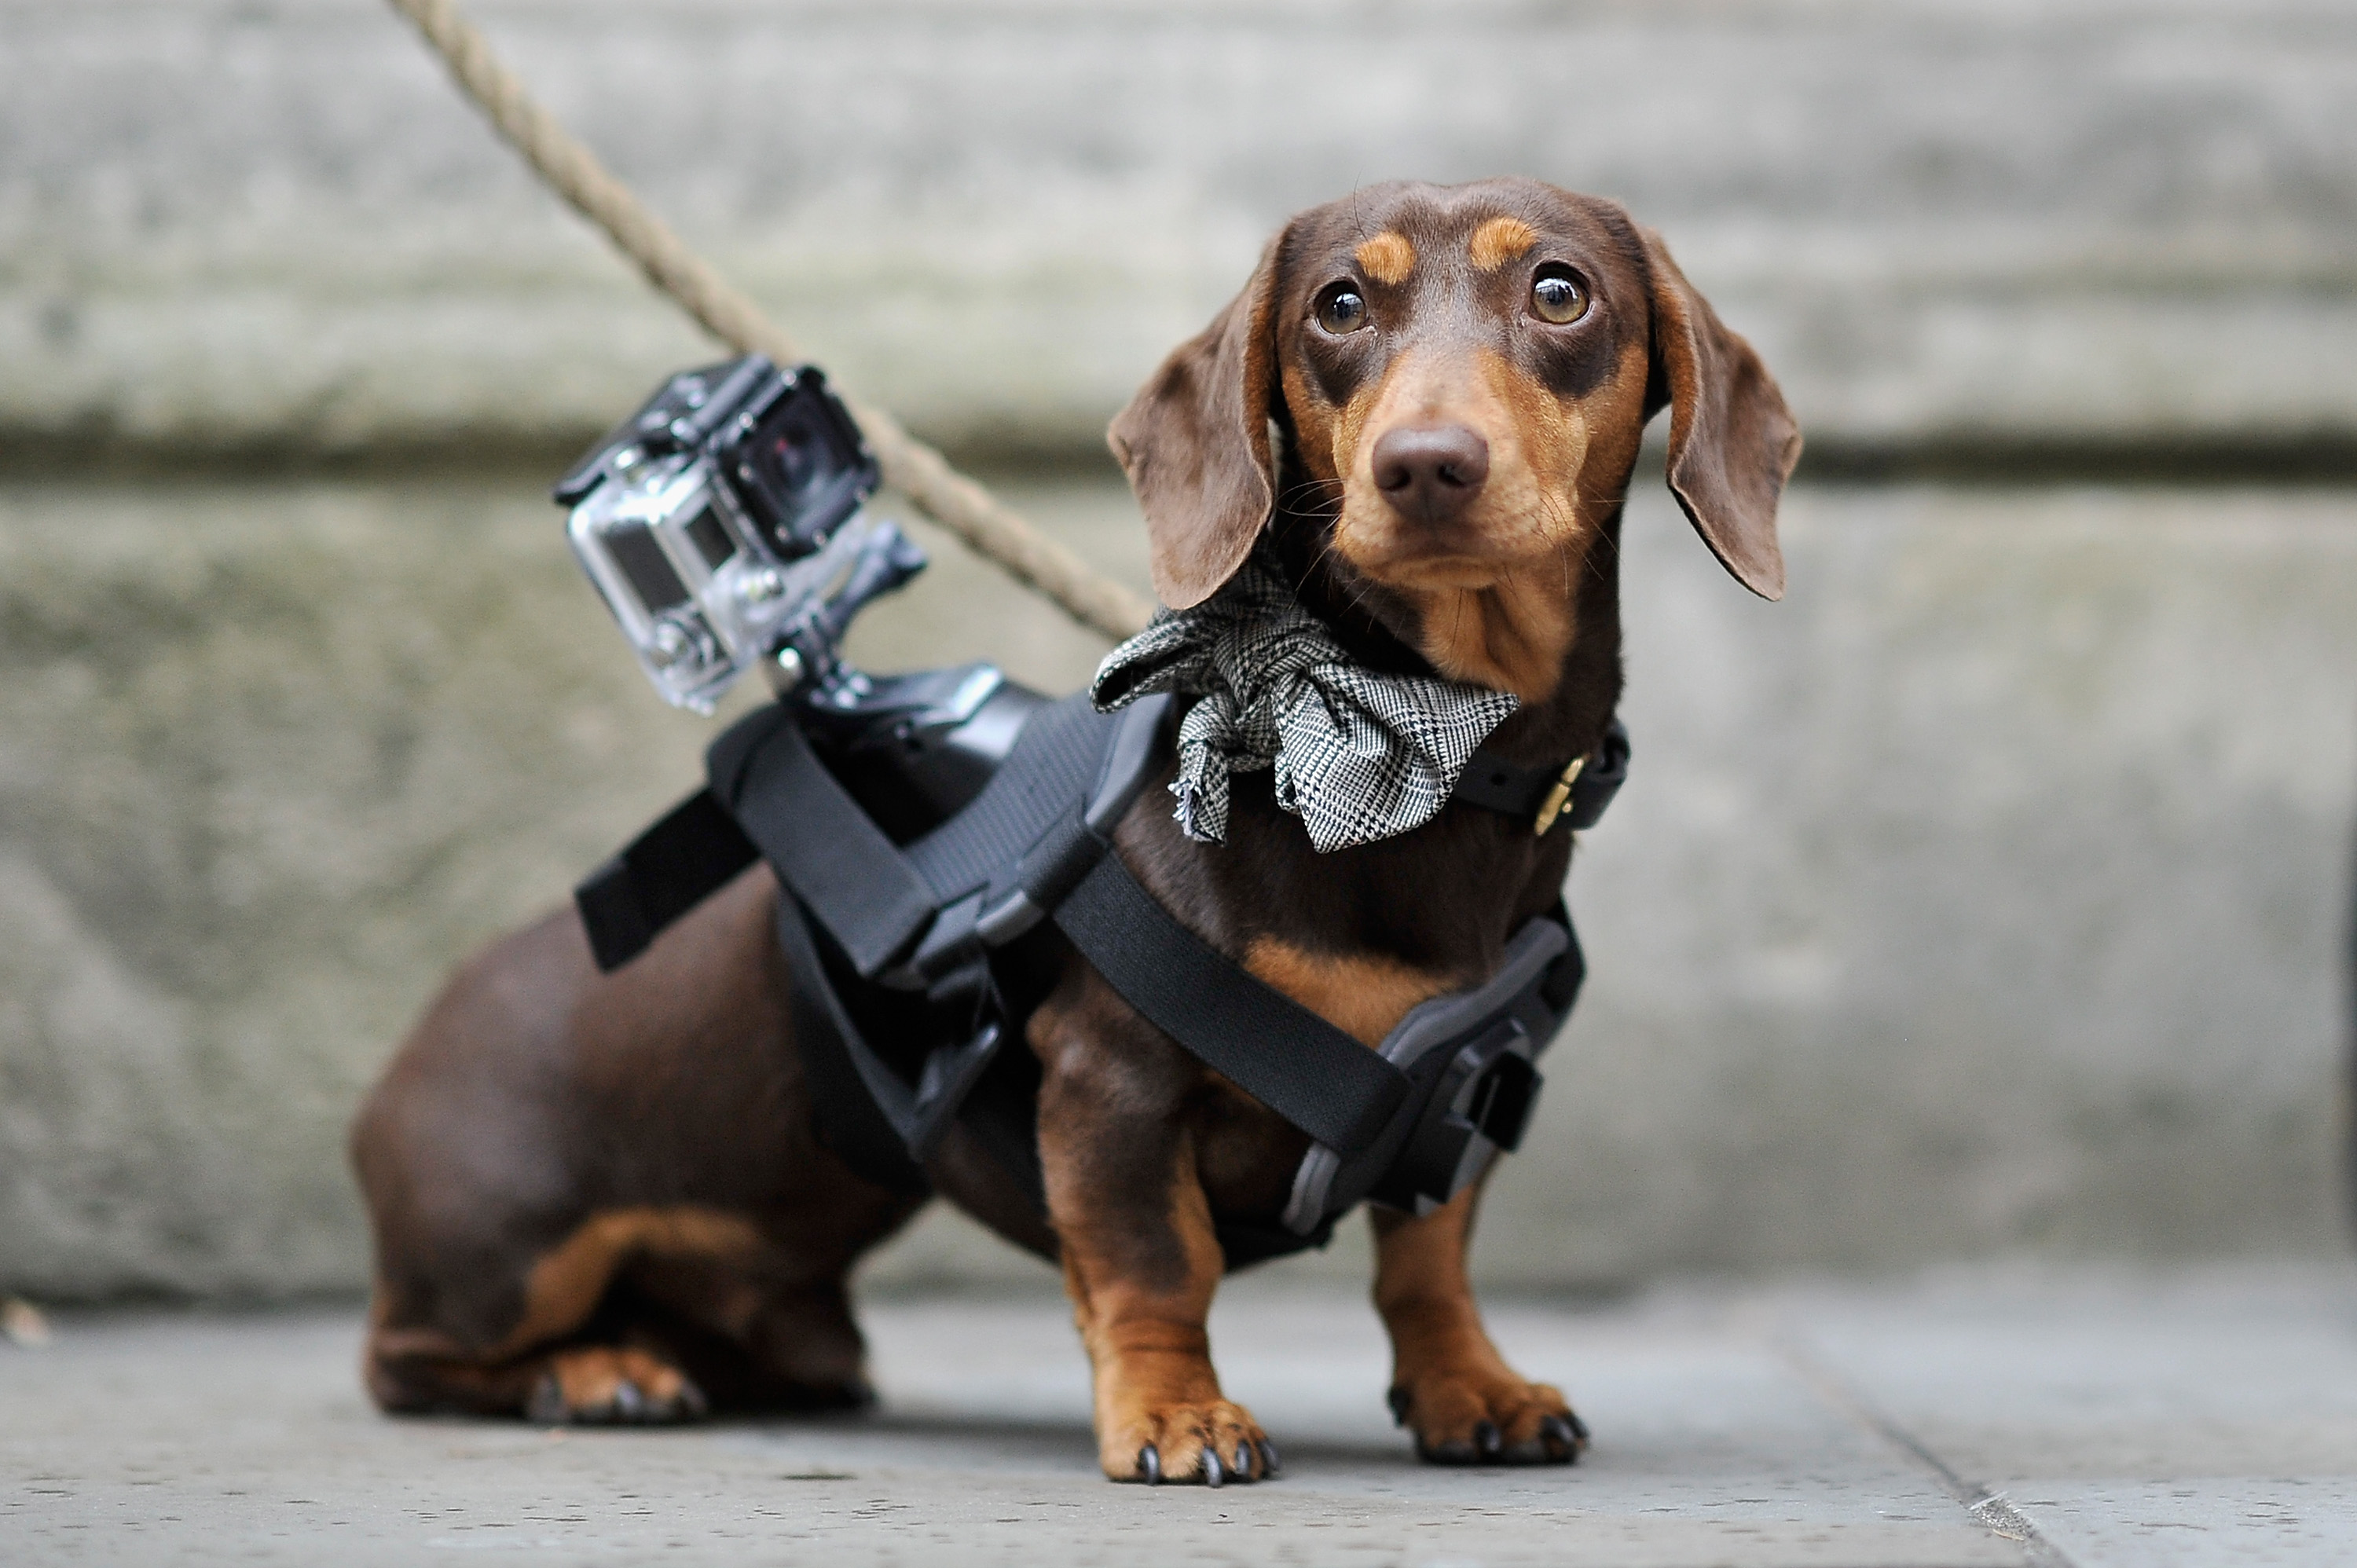 Sergio the Shoe Hunter is seen with his GoPro camera outside the Matthew Williamson show during London Fashion Week Spring Summer 2015 at  on September 14, 2014 in London, England.